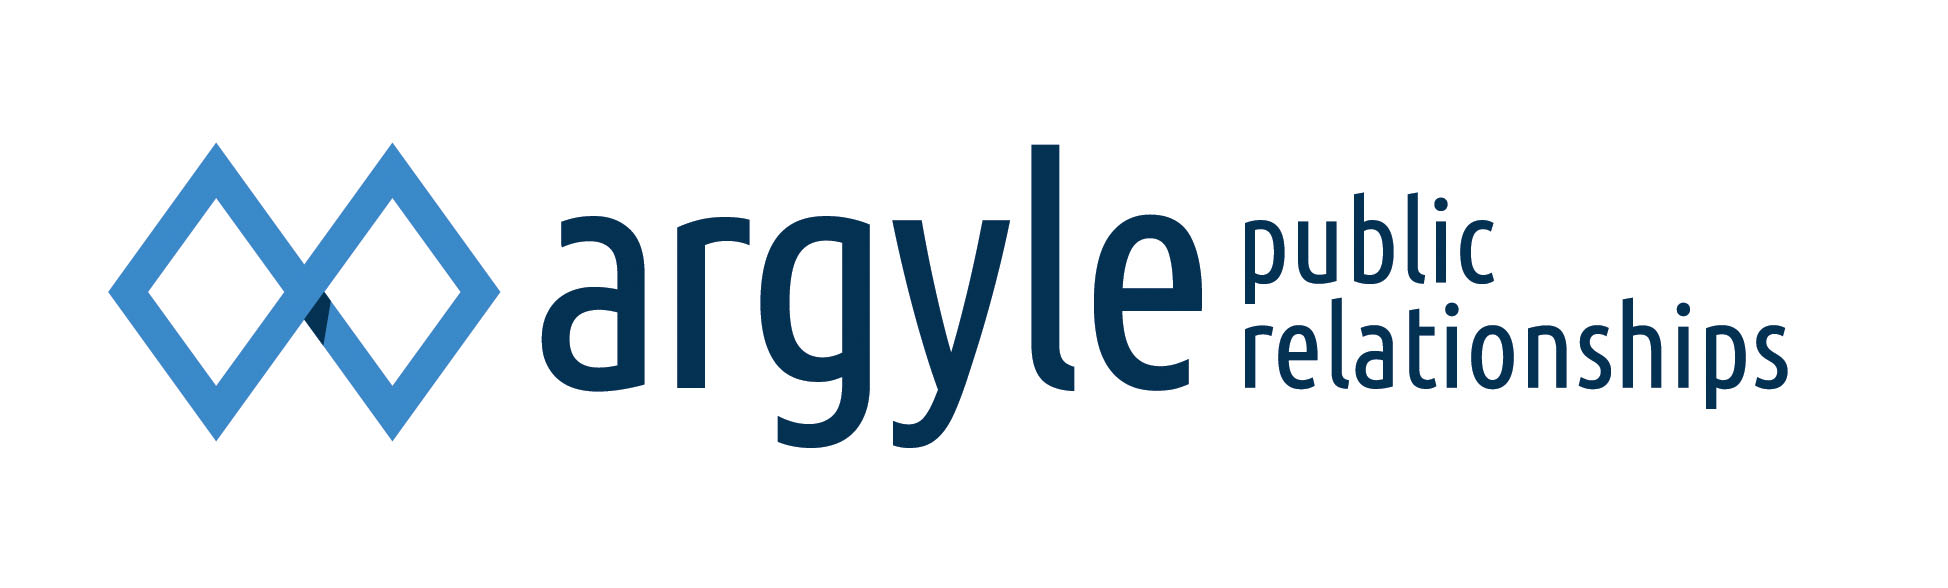 Argyle Public Relationships logo